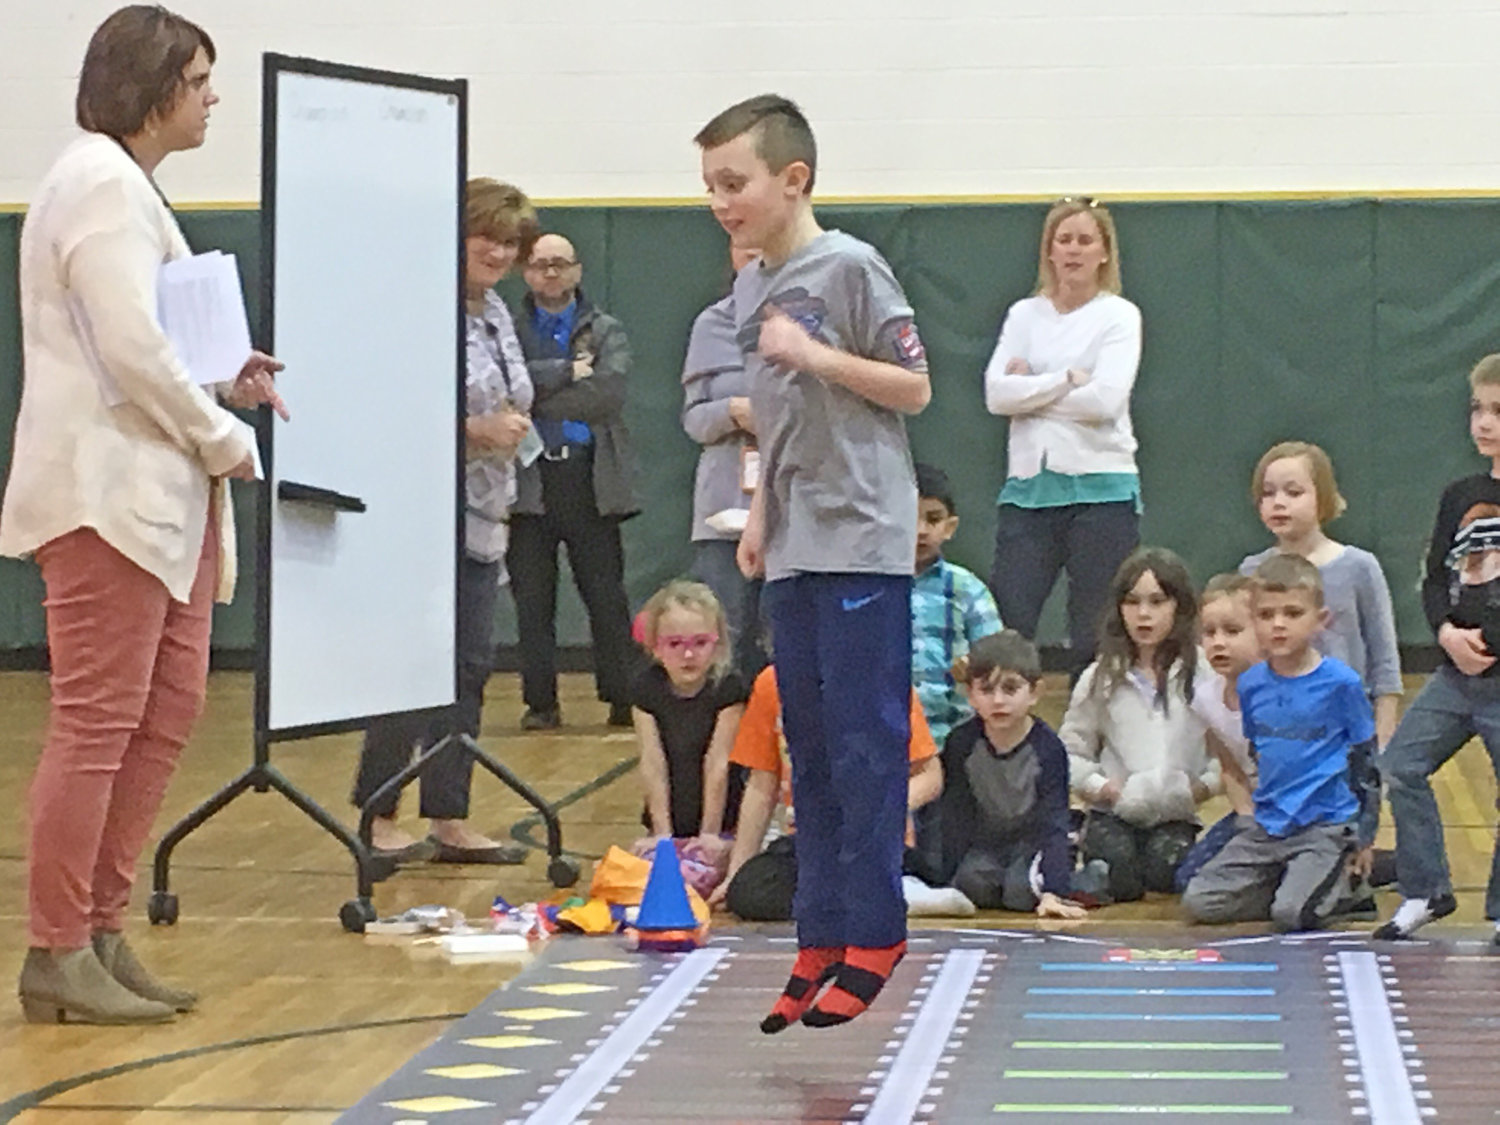 LET'S GET PHYSICAL — Kids got to test their math skills and had fun being physically active during the Jump2Math activity at the ZI3 Adventure Night held at Westmoreland Upper Elementary School March 27.